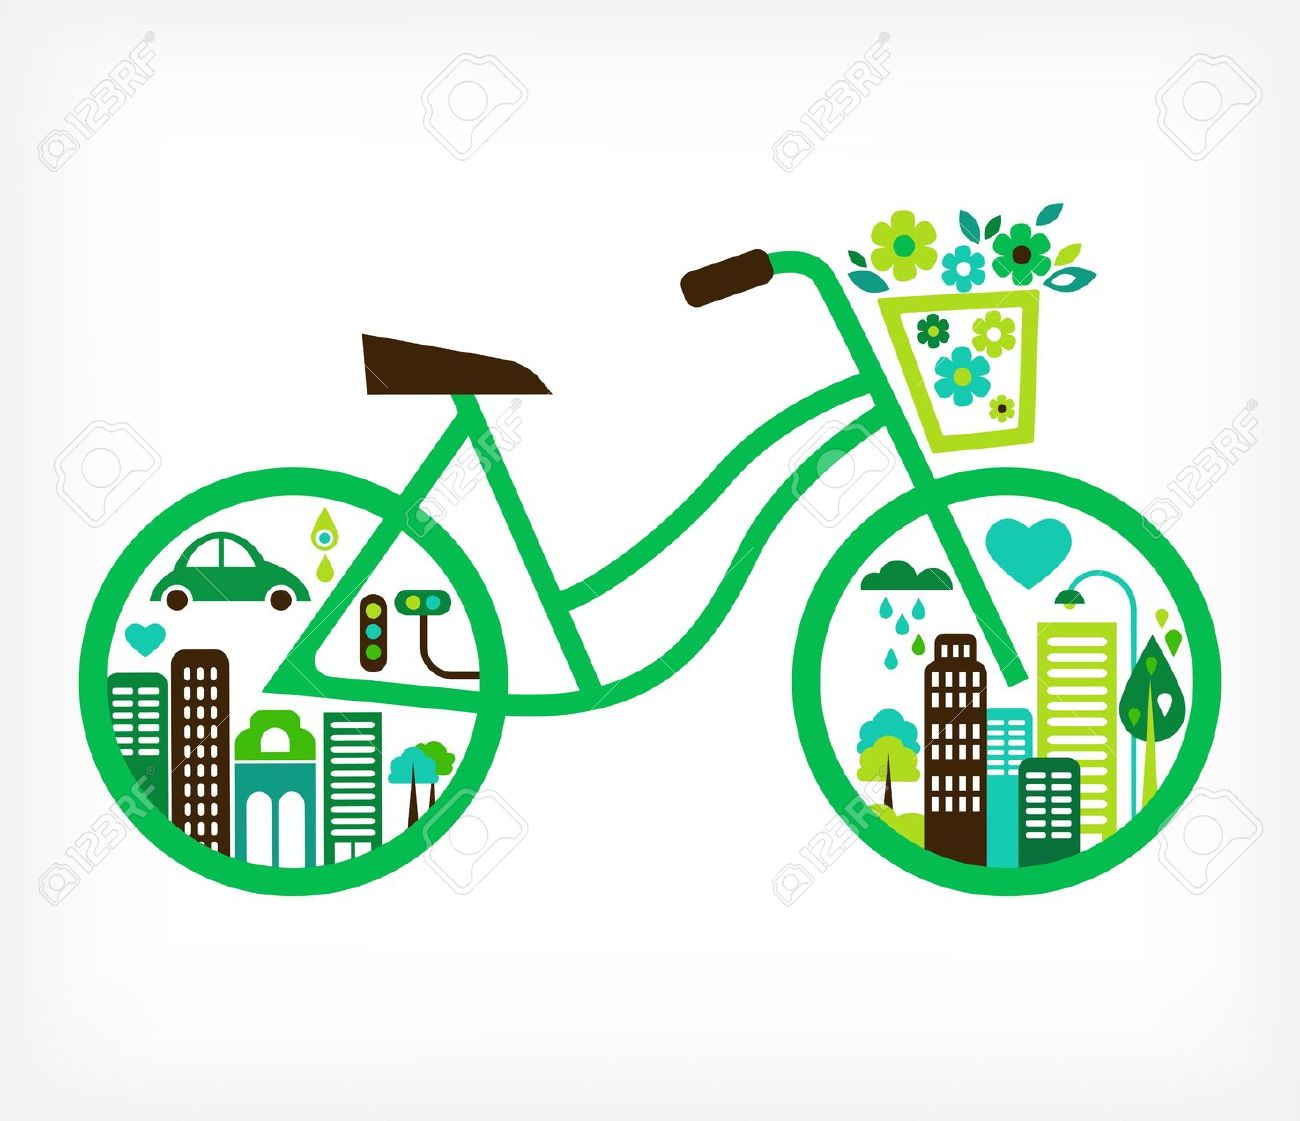 Clipart on save energy save environment clip art free stock Save energy save environment clipart - ClipartFox clip art free stock